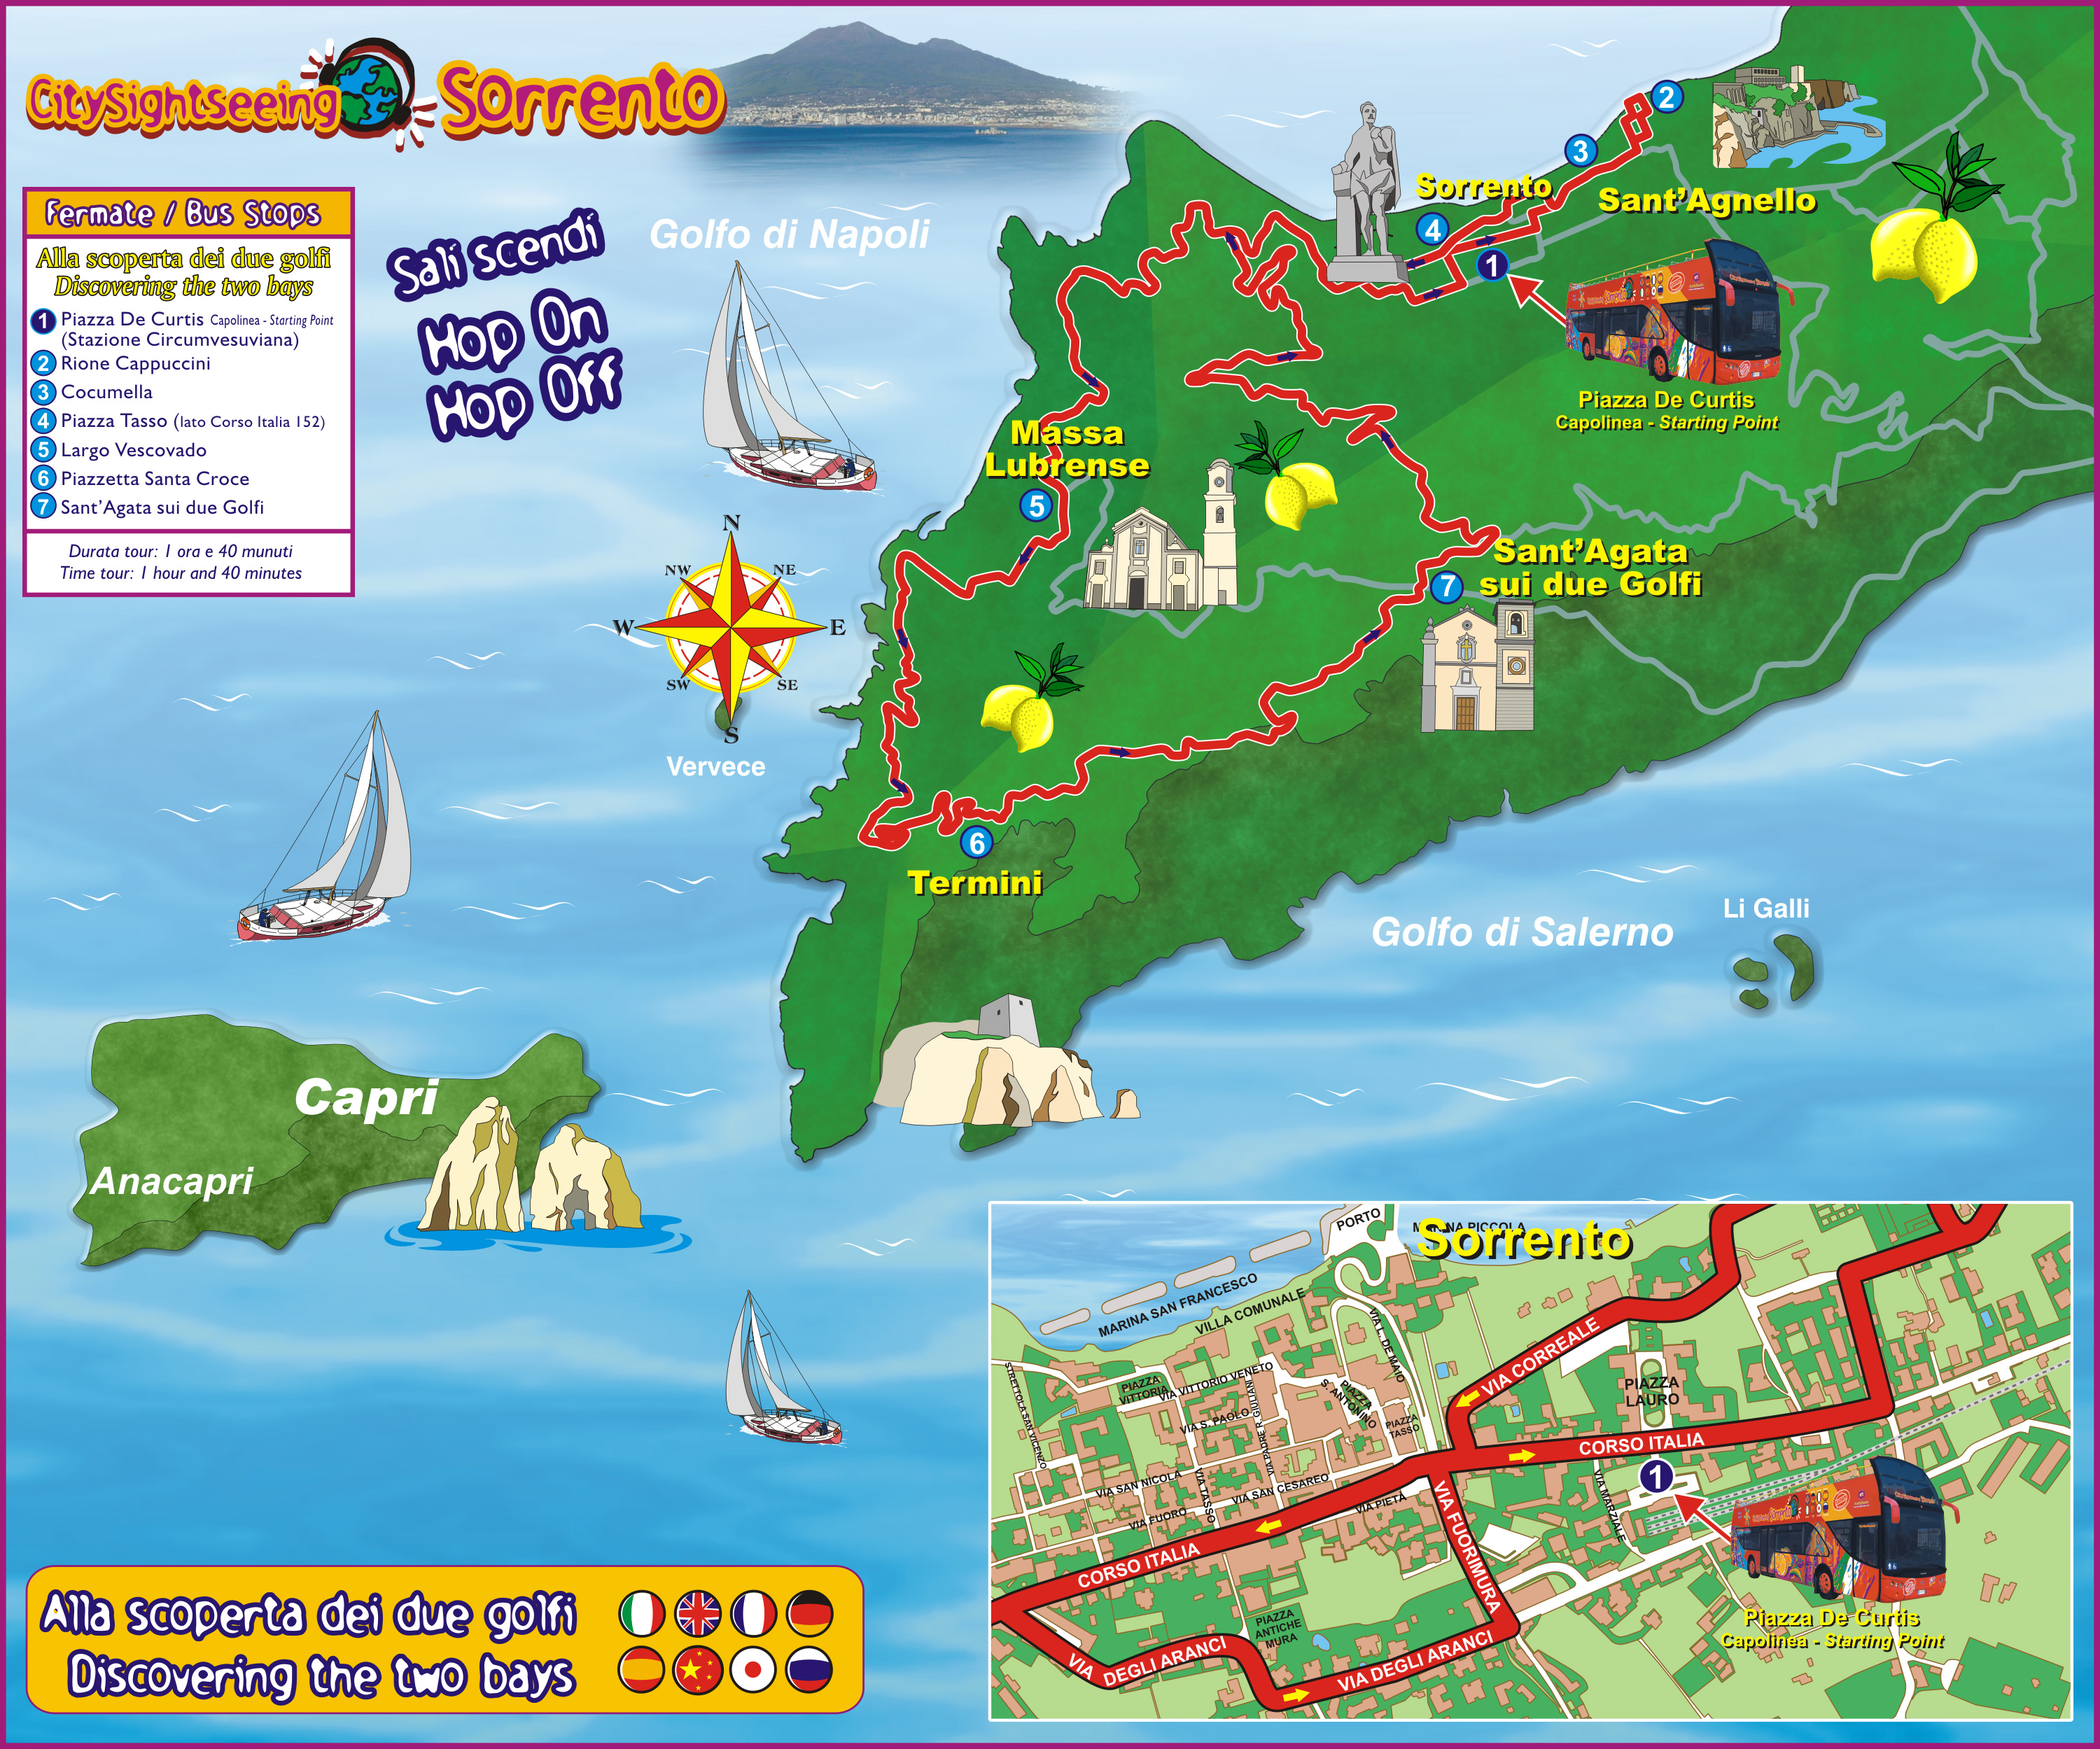 Sorrento City Sightseeing Offers Discounts Cheap Tickets Buy